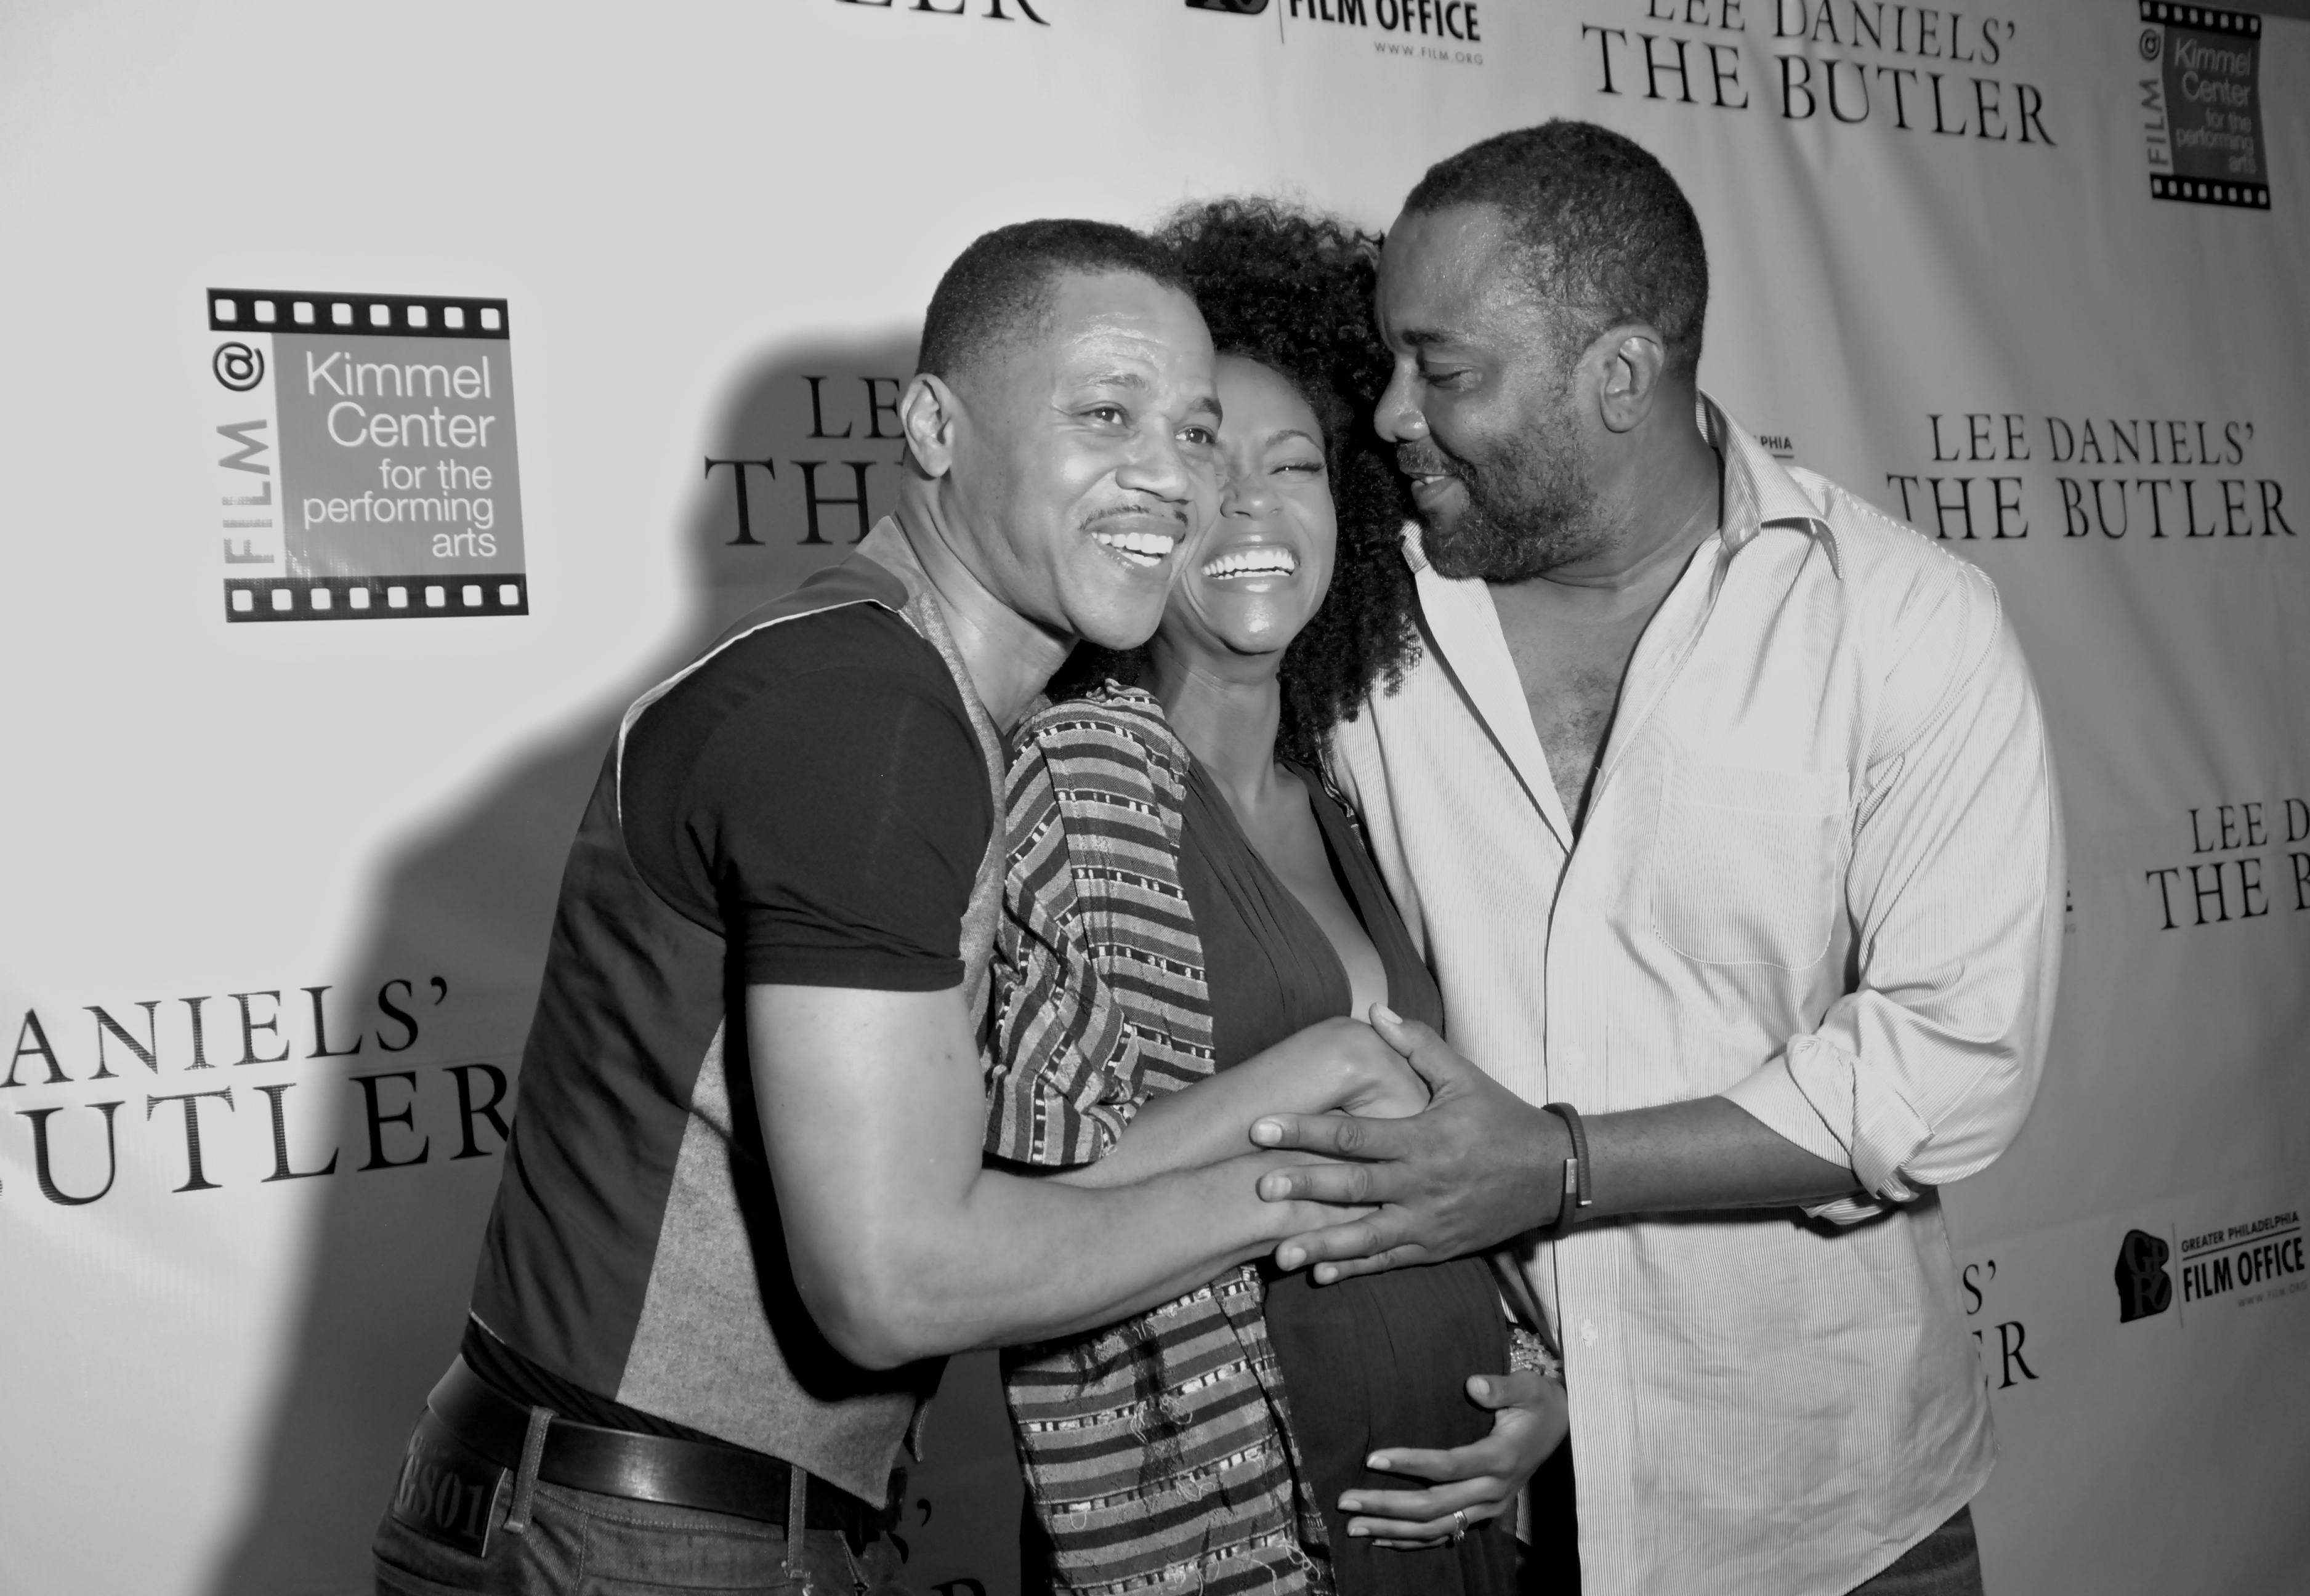 Philadelphia Welcomes Home Native Son For Premiere Of Lee Daniels The Butler Music Movies Thoughts